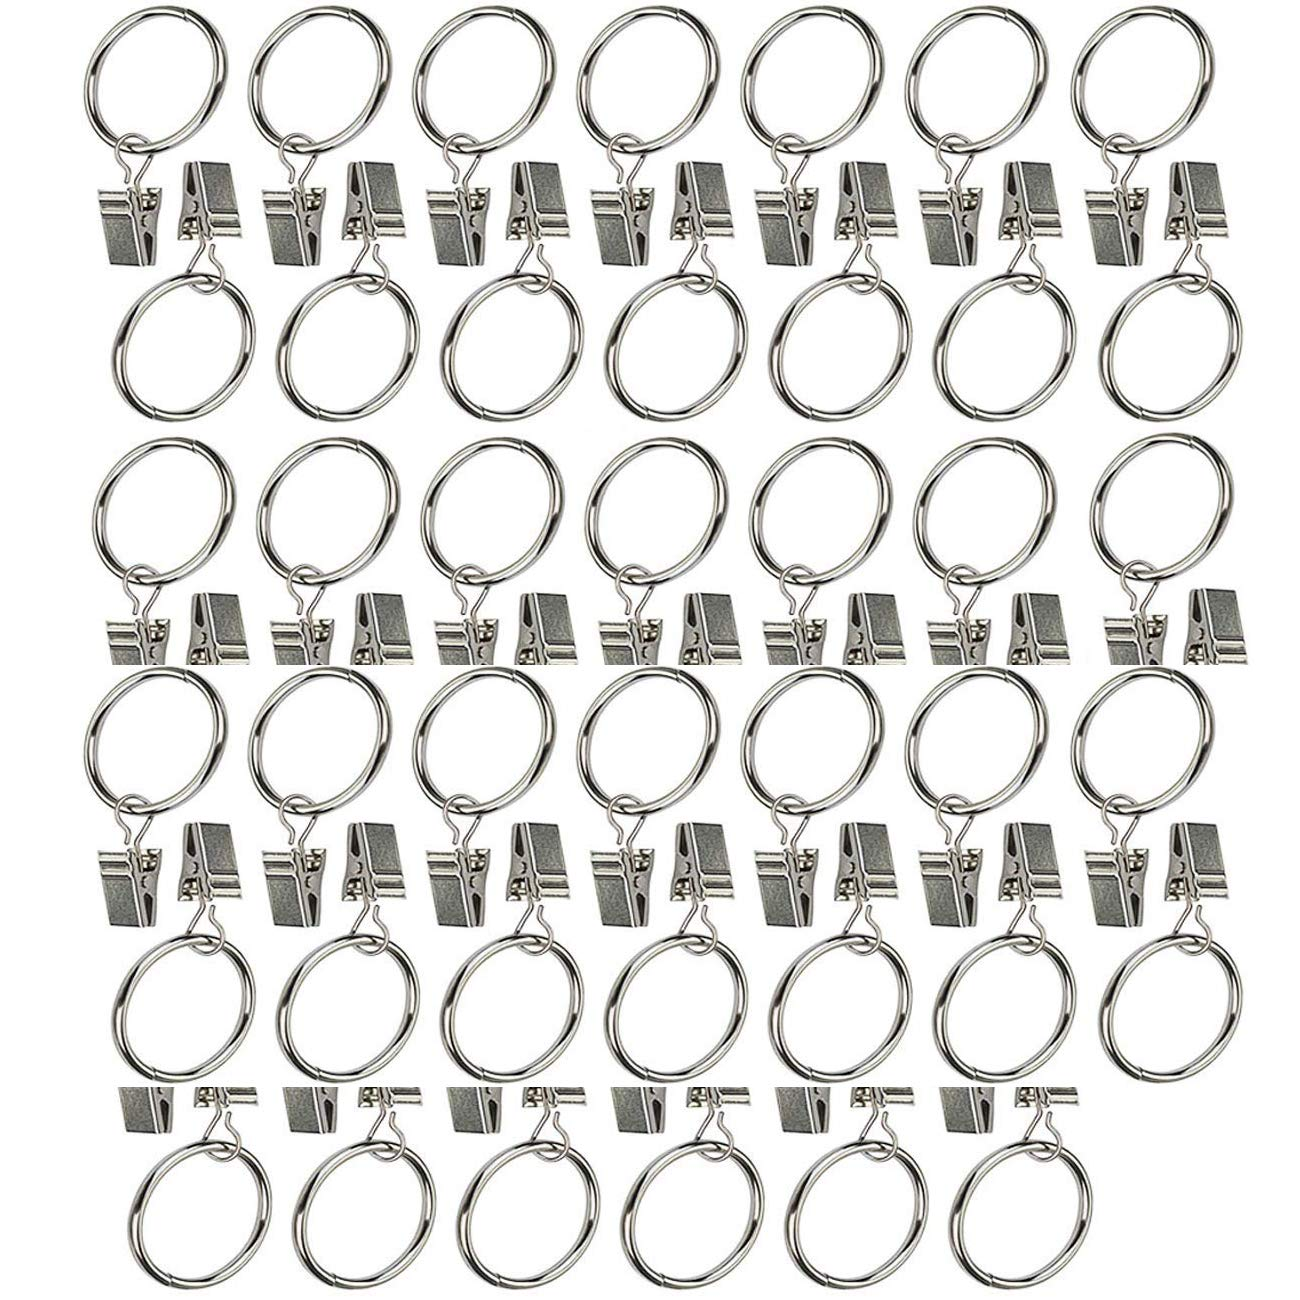 CRIVERS Practical Metal Rustproof Curtain Clips Rings Drapery Curtain Rings with Clips (40pc)